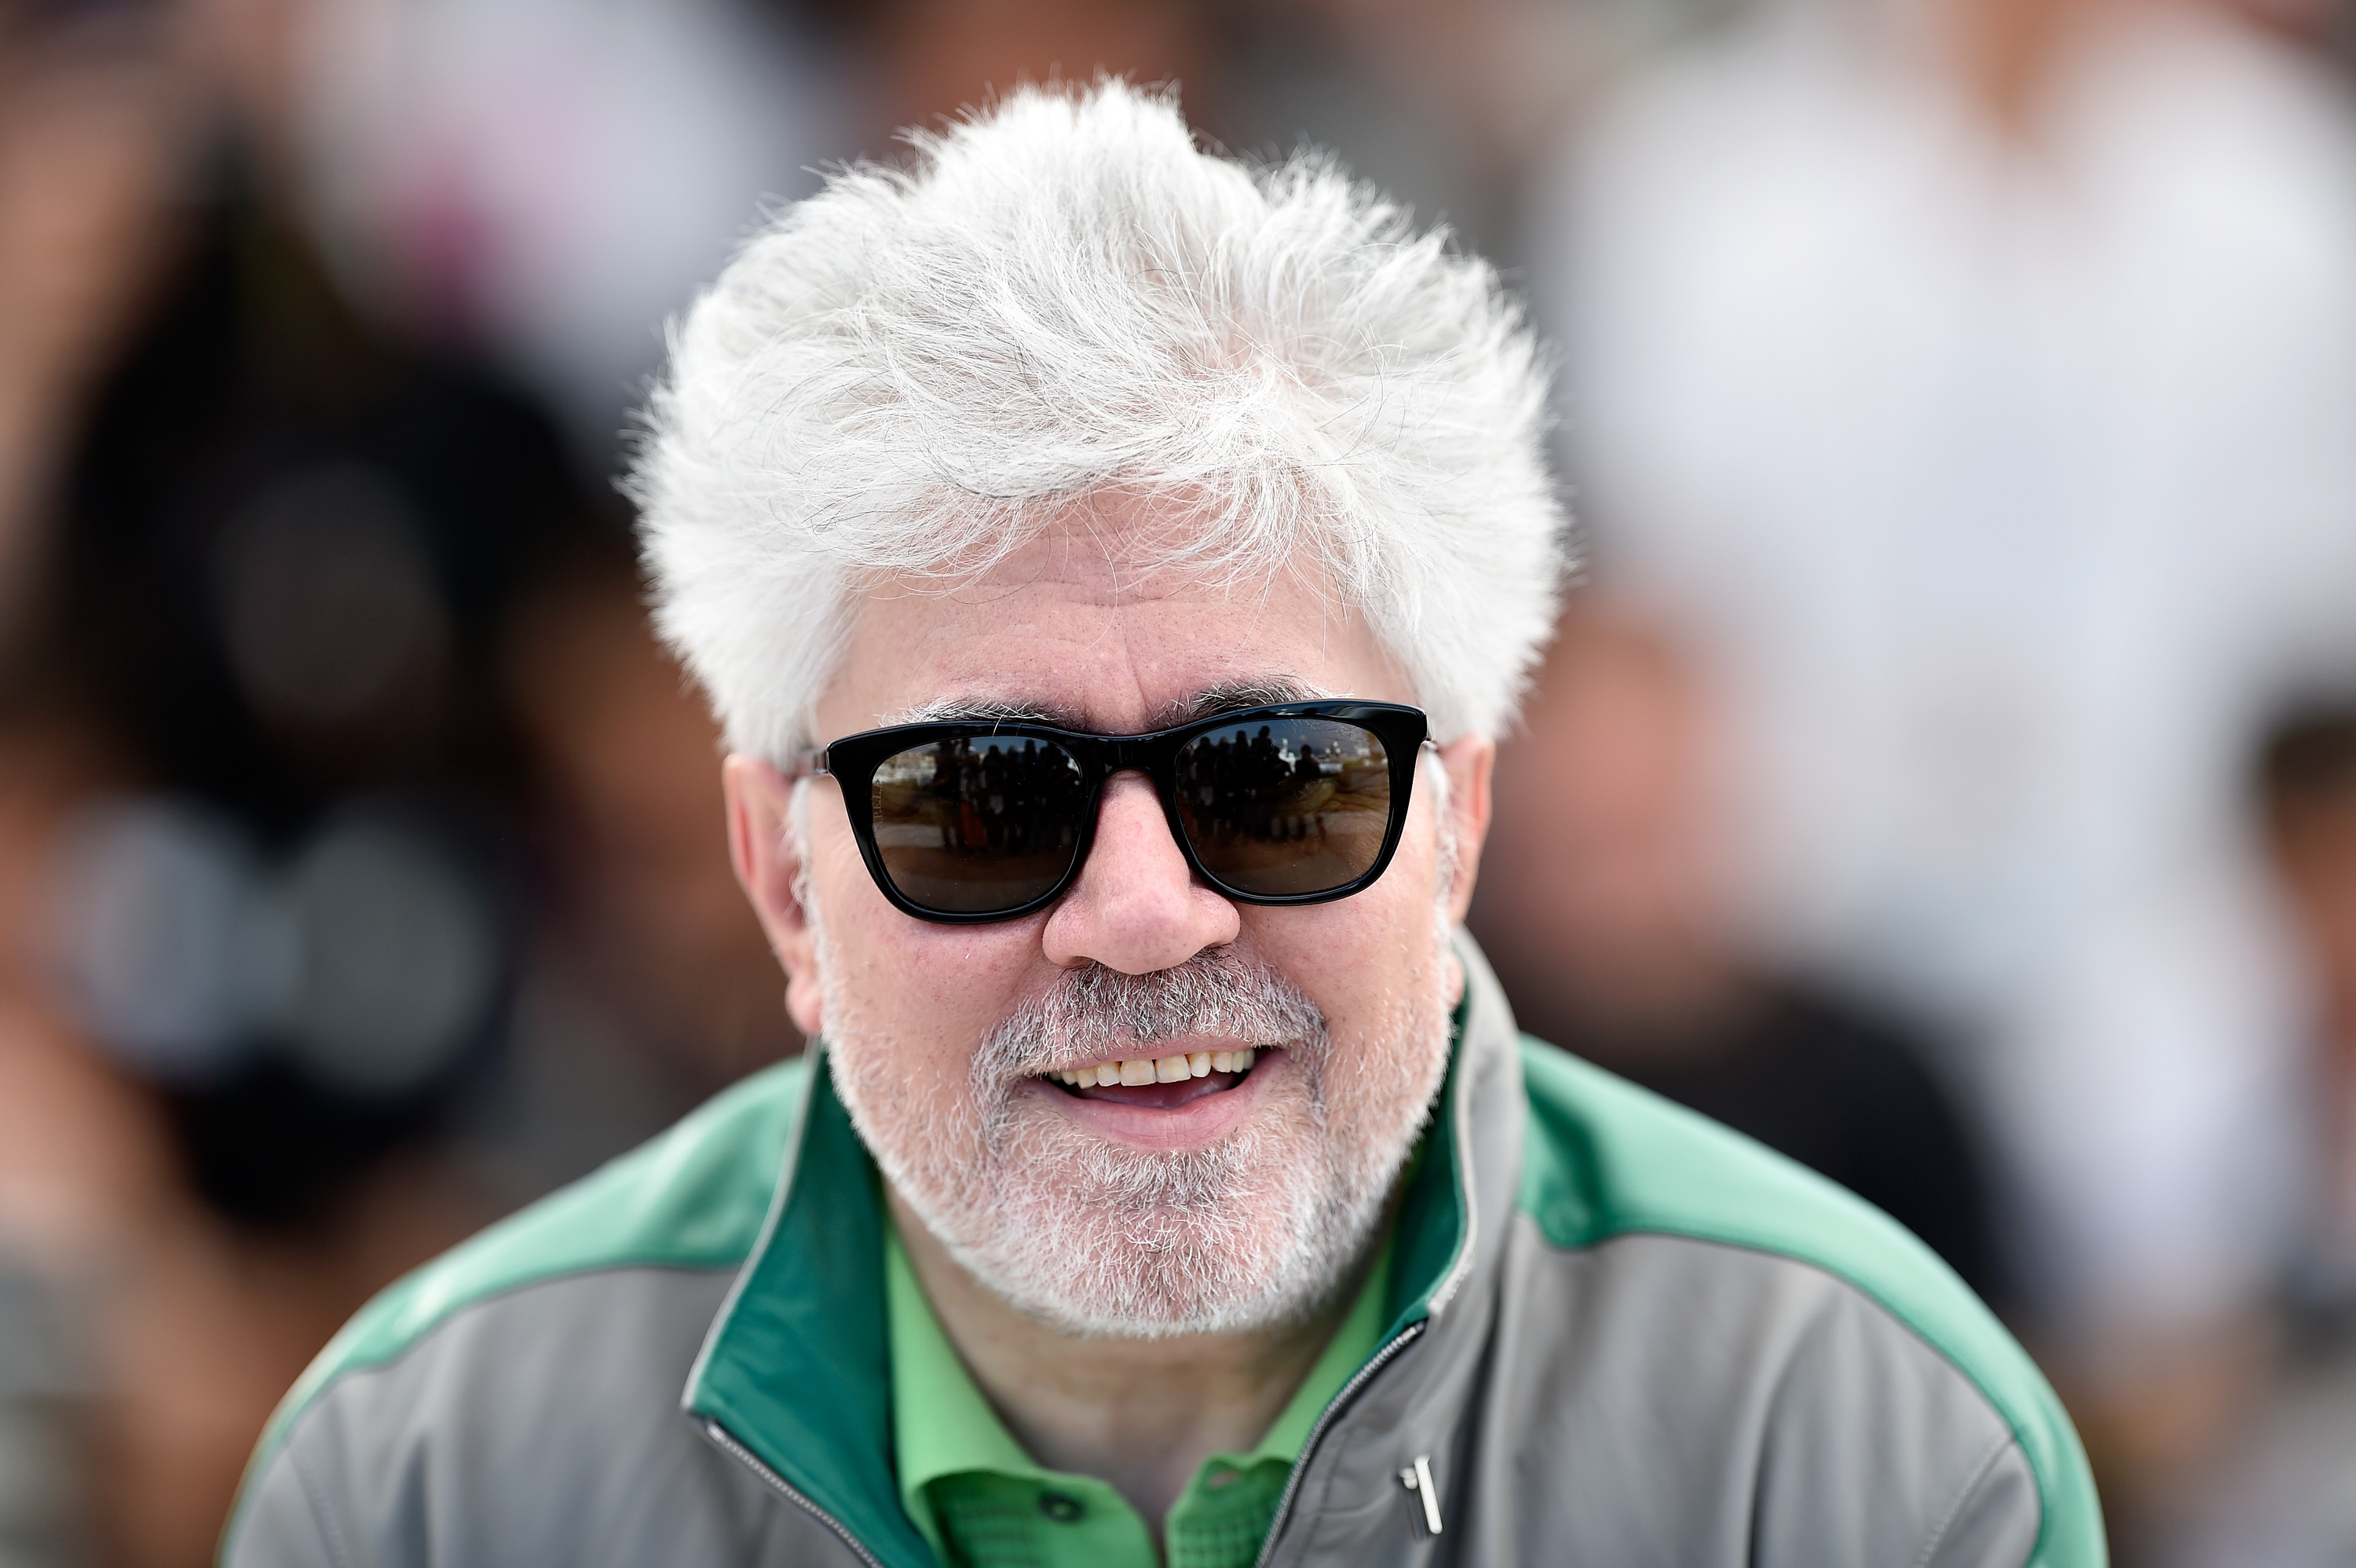 Pedro Almodóvar Reveals Details of His Next Movie 'Dolor y Gloria'